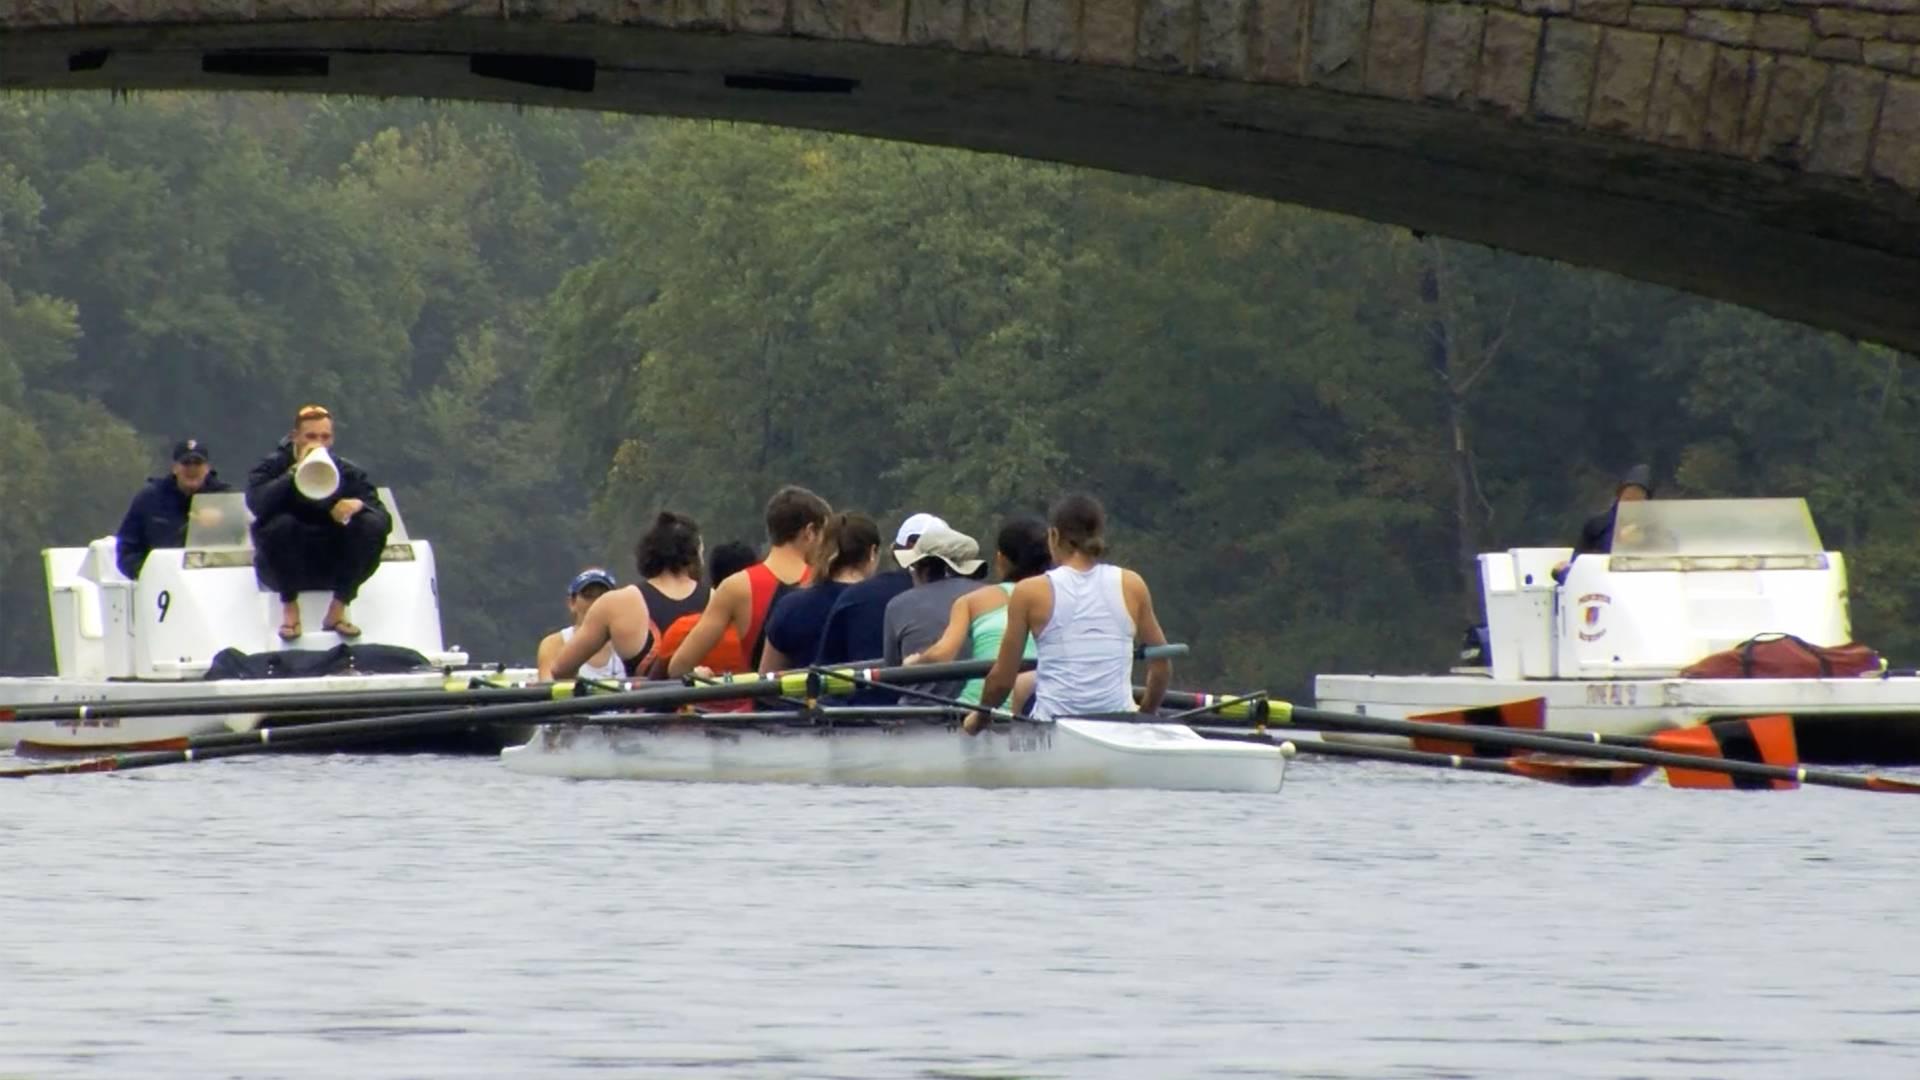 Special Olympics Rowing program